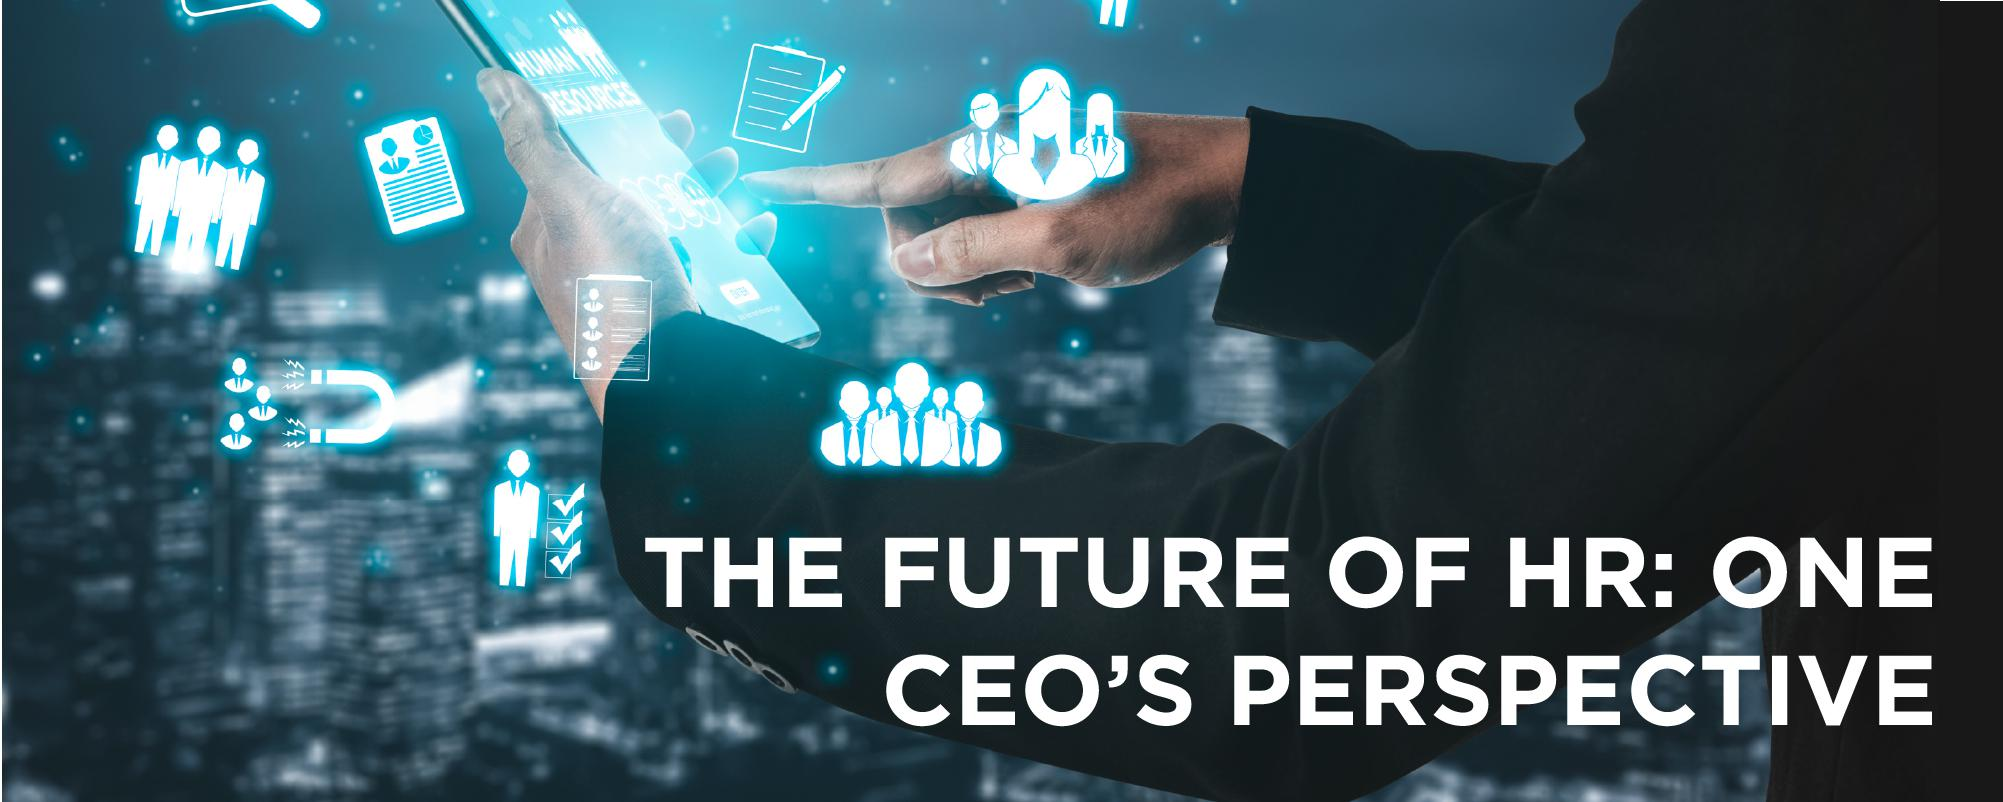 The Future of HR: One CEO's Perspective